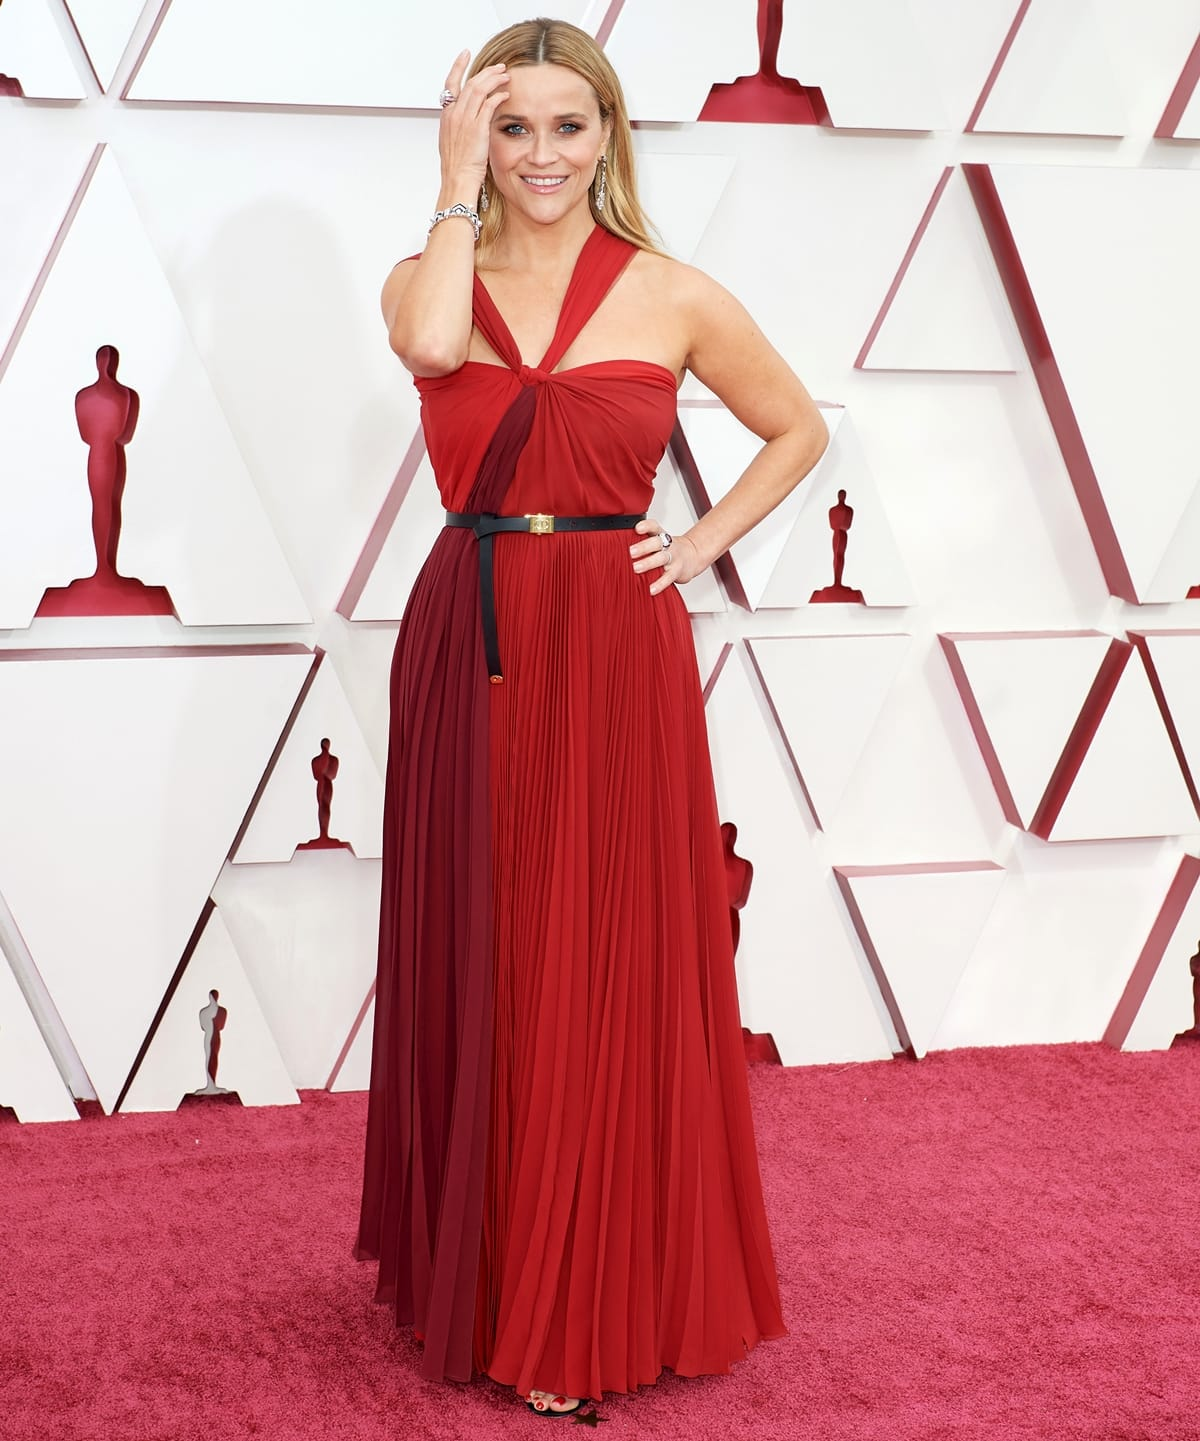 Reese Witherspoon in a red Dior dress and Bvlgari jewelry at the 2021 Academy Awards